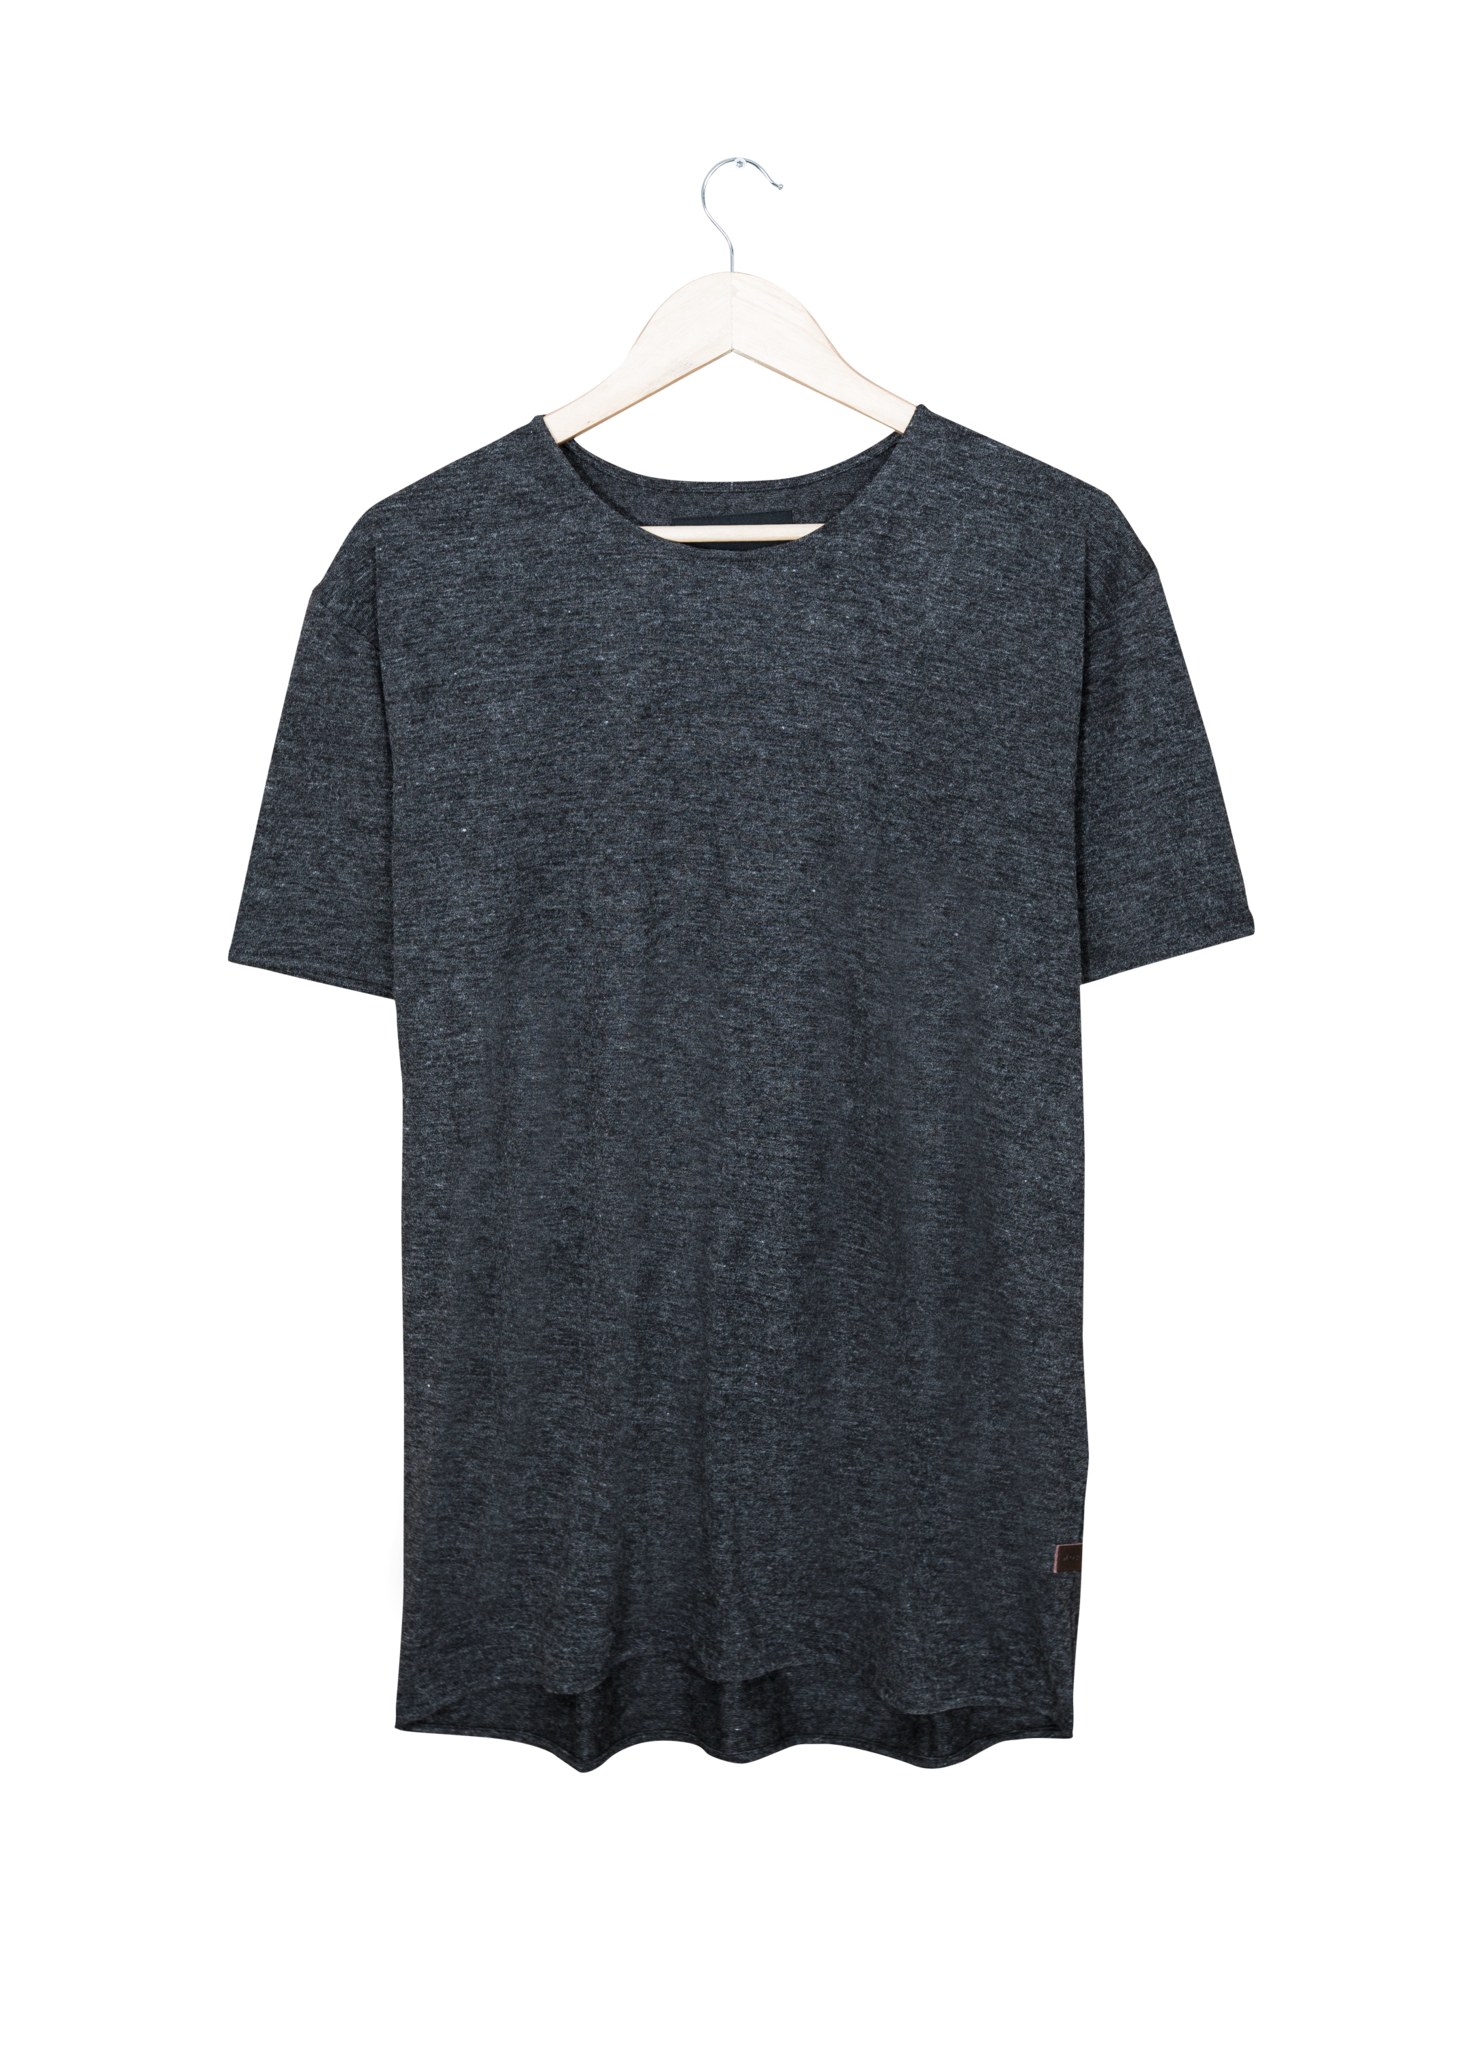 Karl - T-shirt - Grey - Nordre